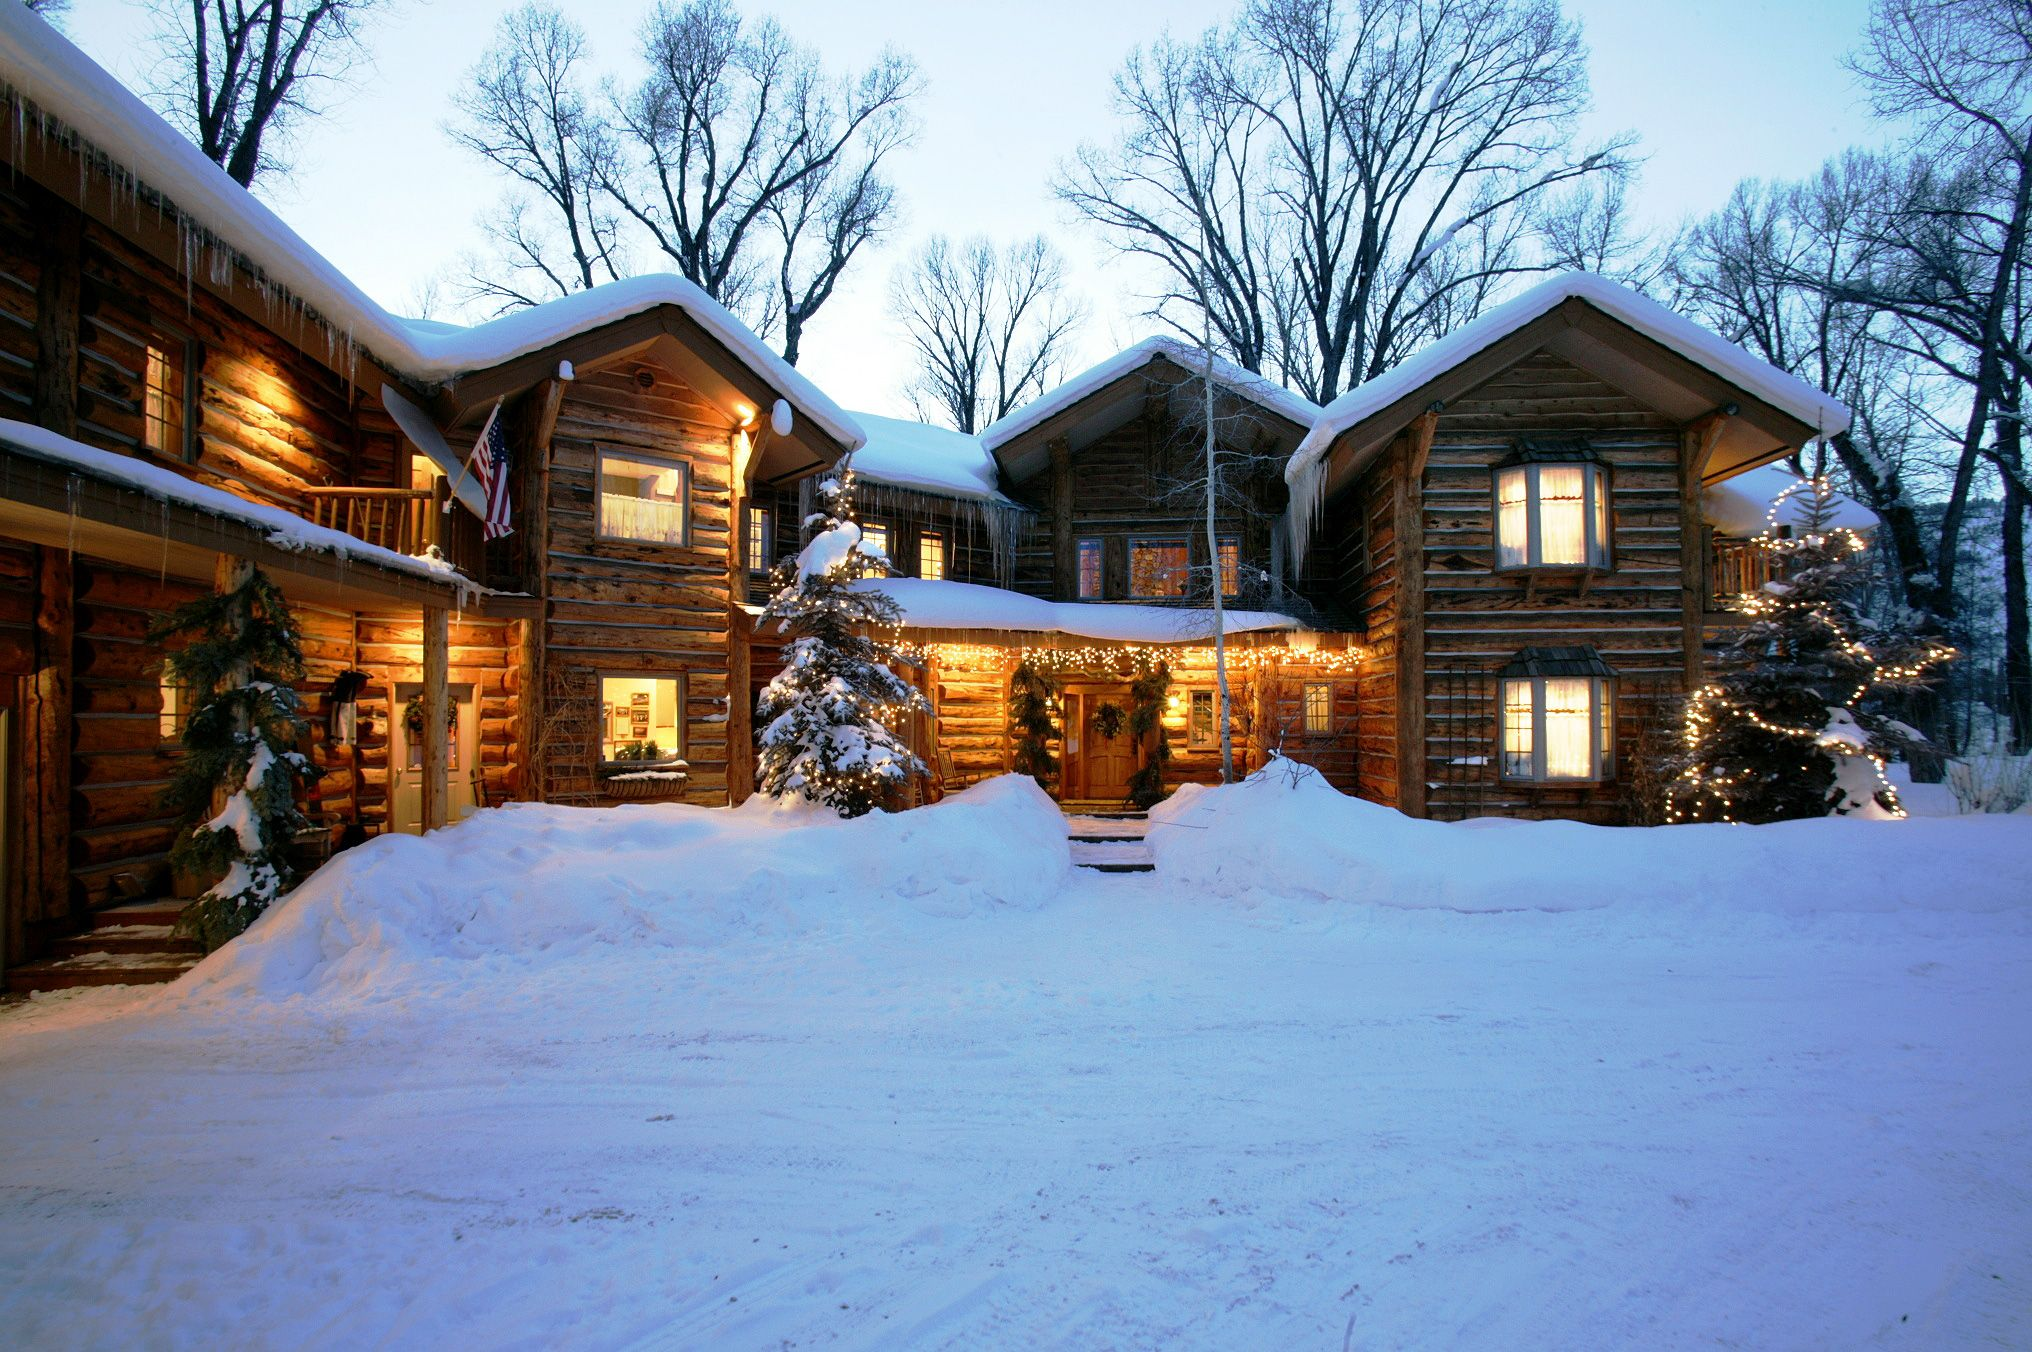 Bentwood Inn (Jackson Hole, WY Bed and breakfast, Lodge